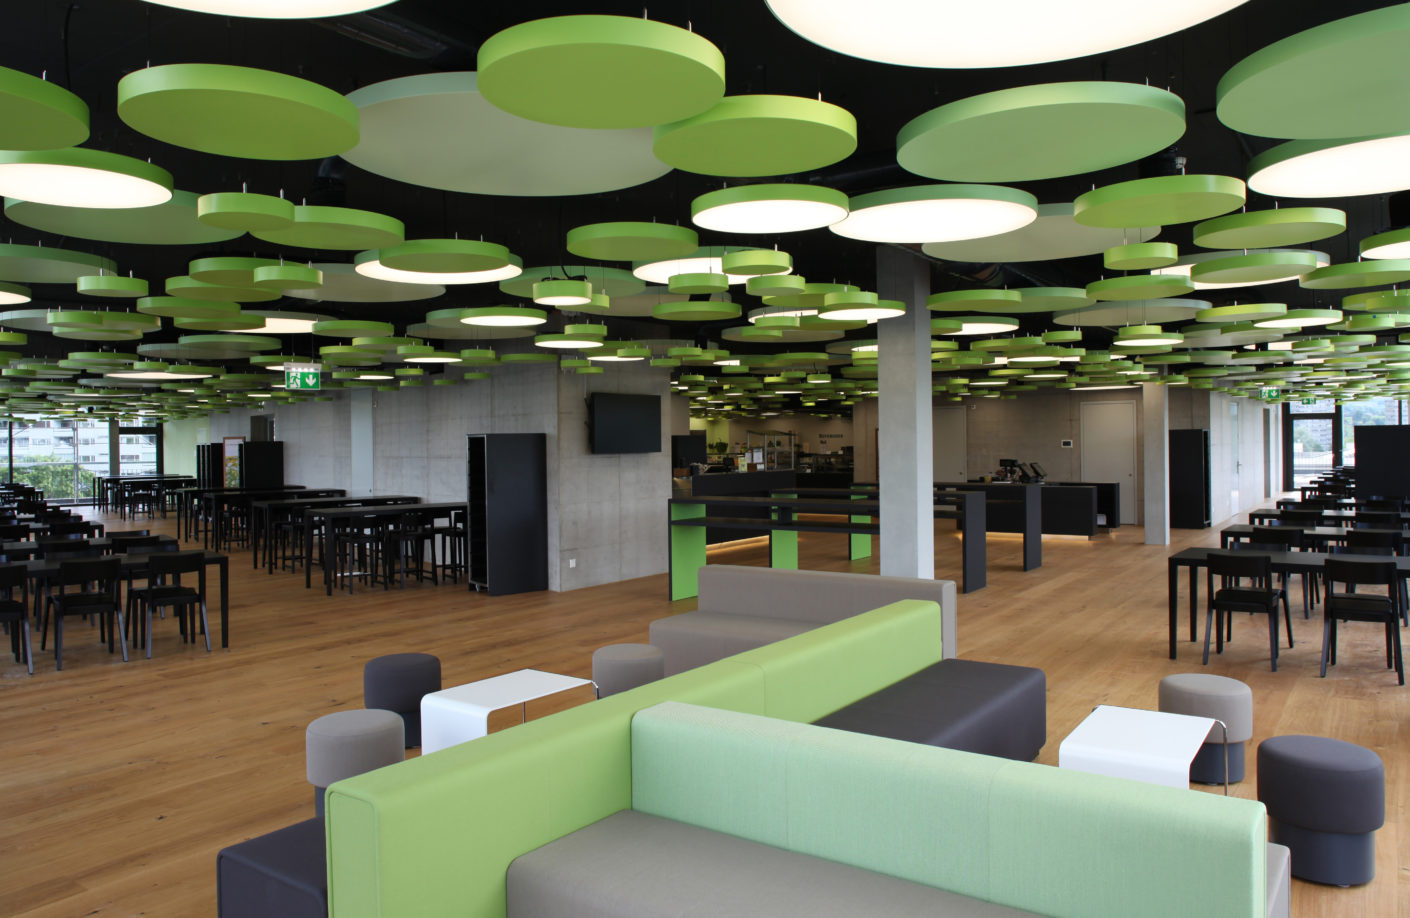 Available as flush-mounted, ceiling mounted or pendant luminaires and in a wide range of sizes, the round lighting unit can be easily integrated into a variety of architectural styles.